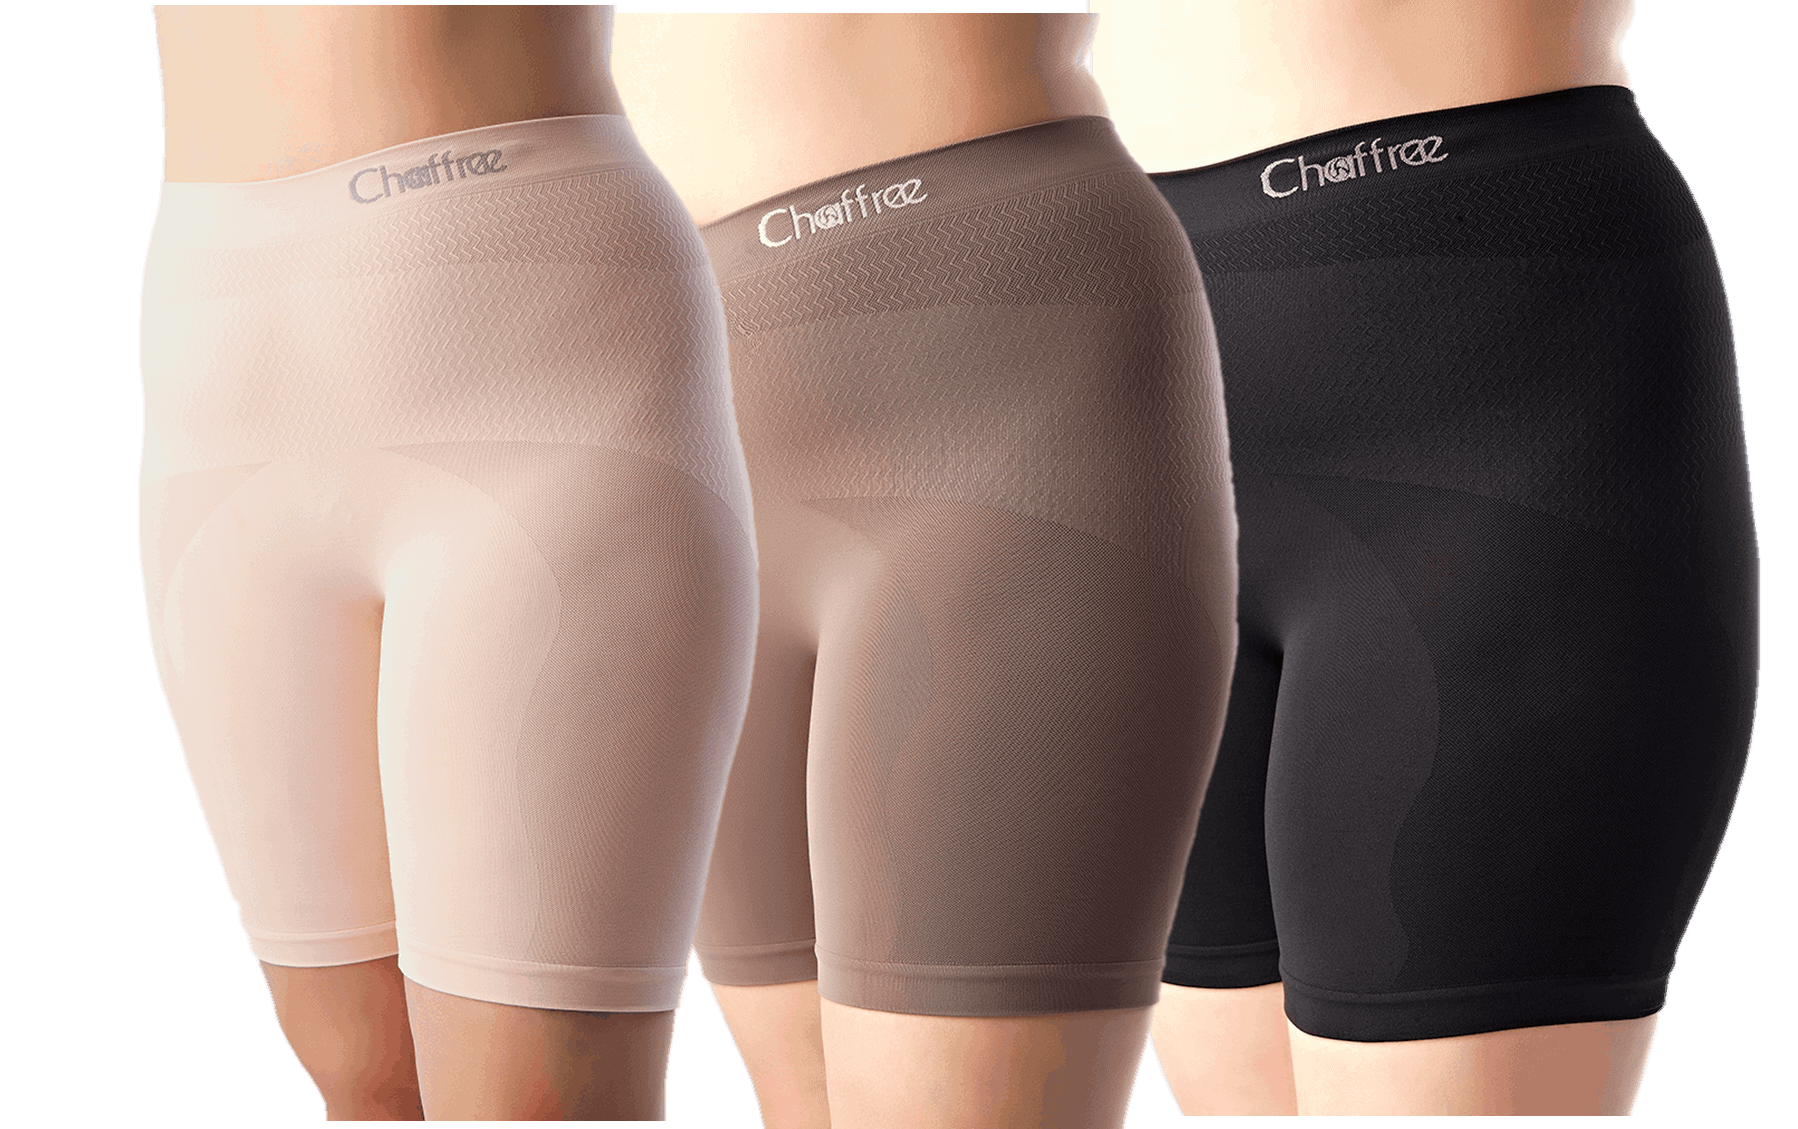 Chaffree anti chafing long leg knicker boxers giving sweat relief as protection against chafing